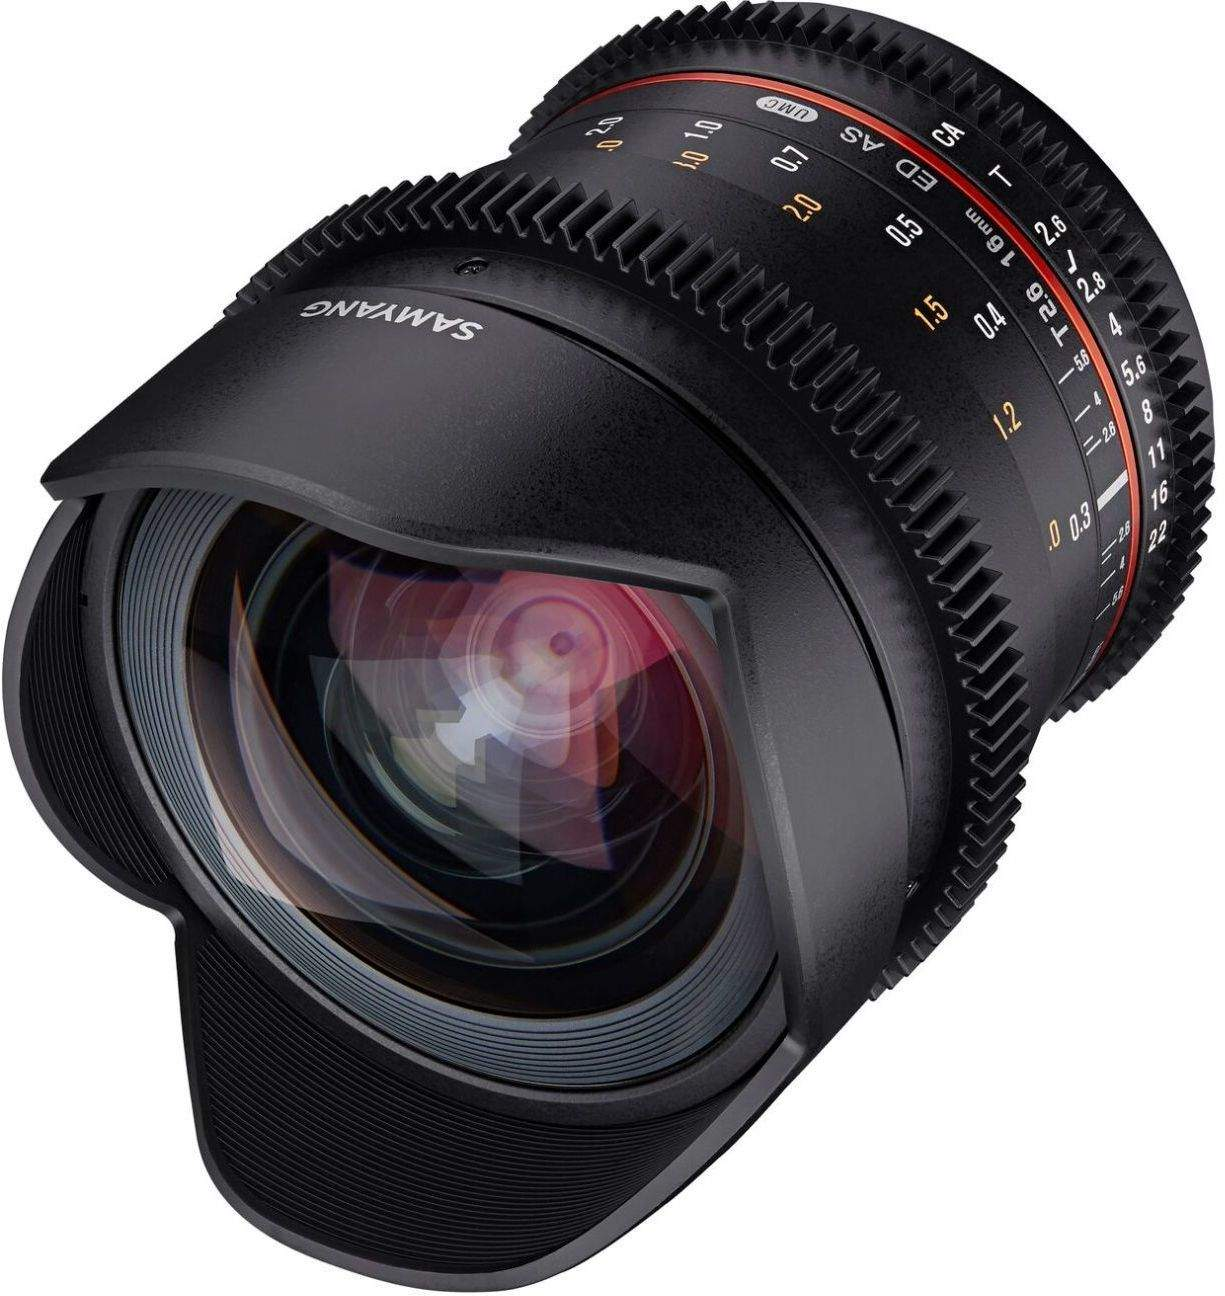 16mm T2.6 VDSLR UMC II Canon M Full Frame Video Lens